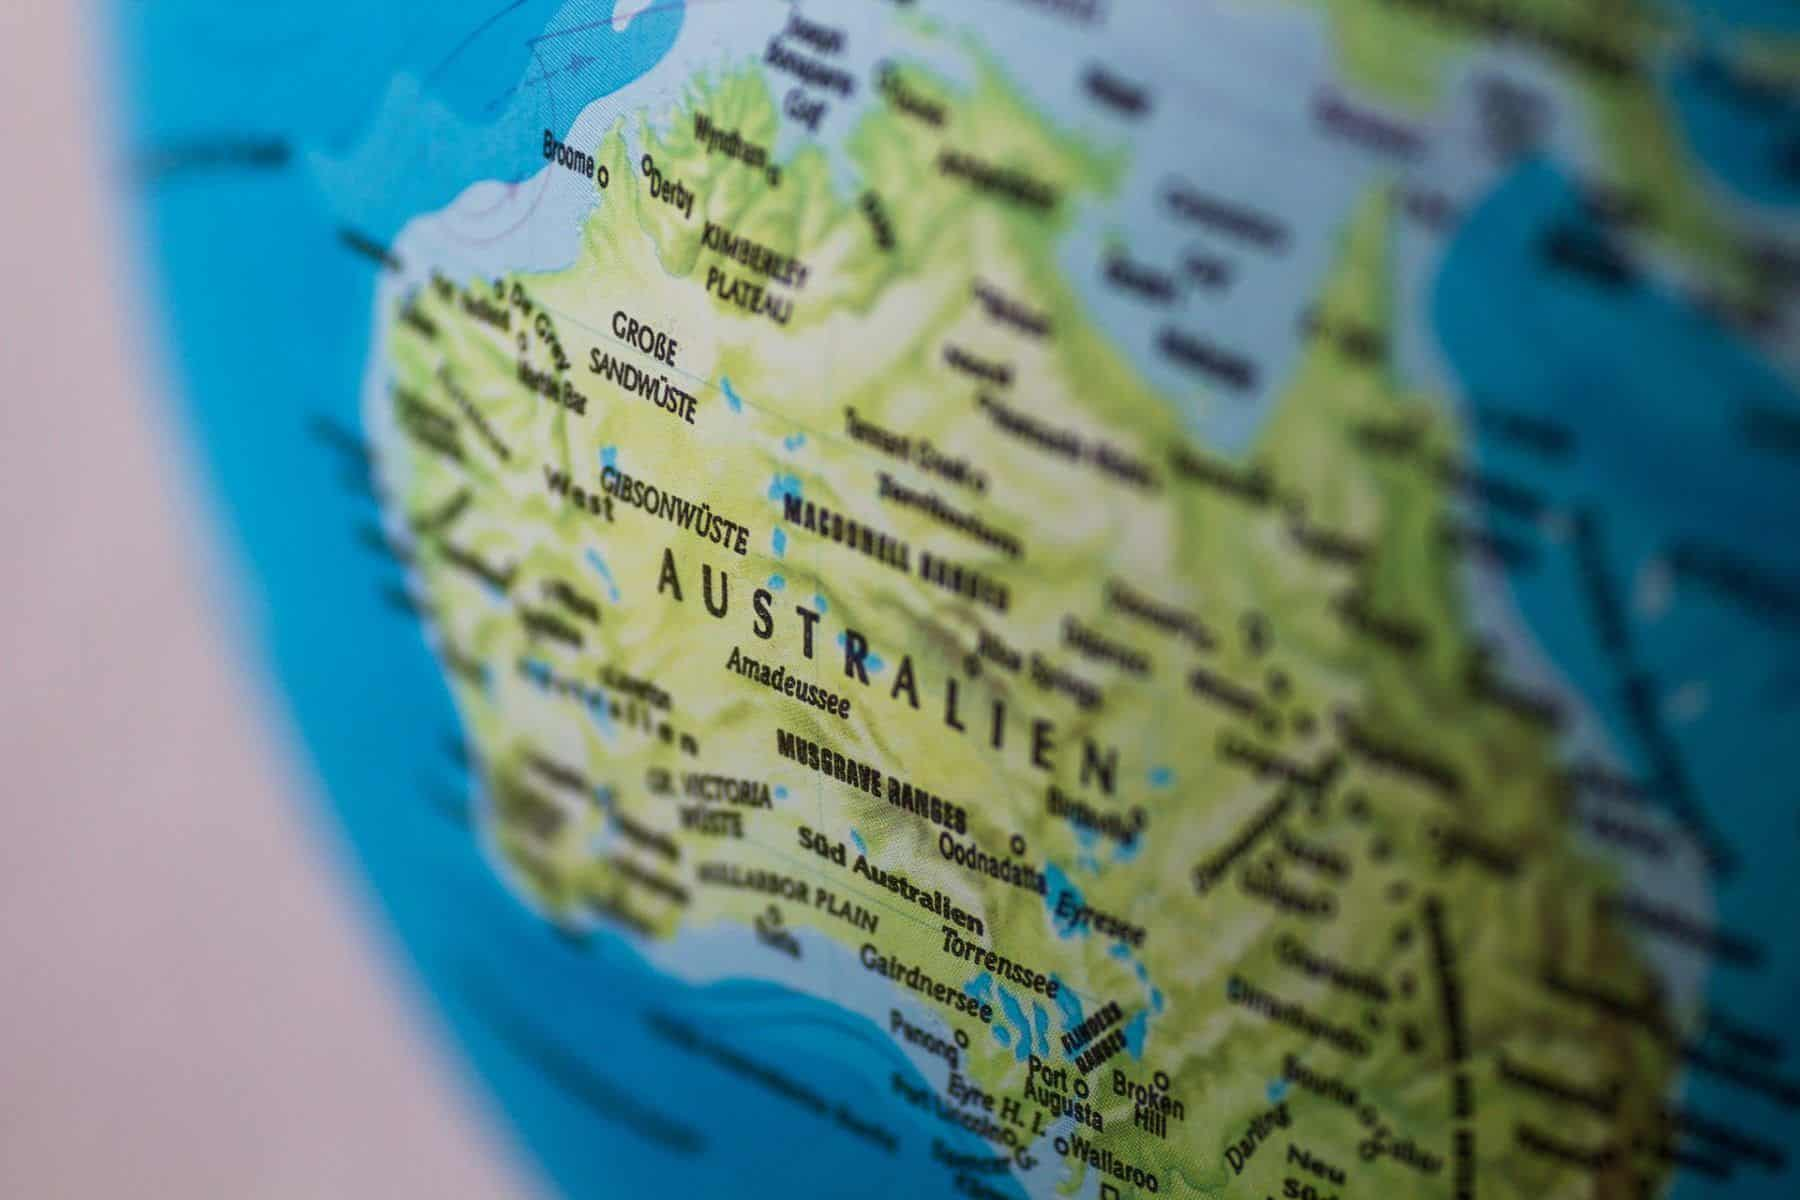 IELTS Sprachtest für Australien